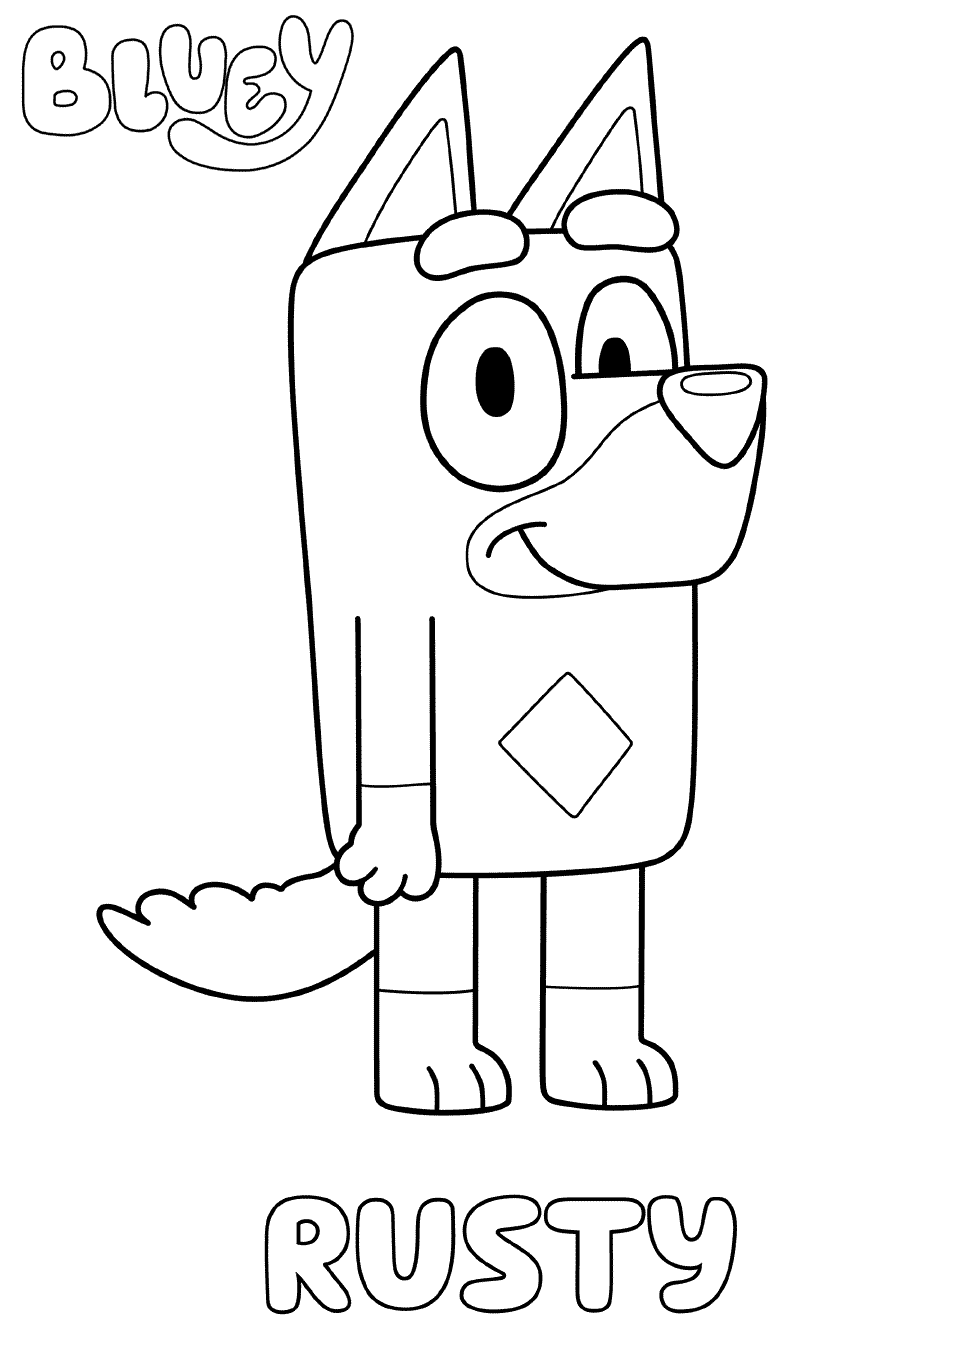 Rusty Bluey Coloring Pages